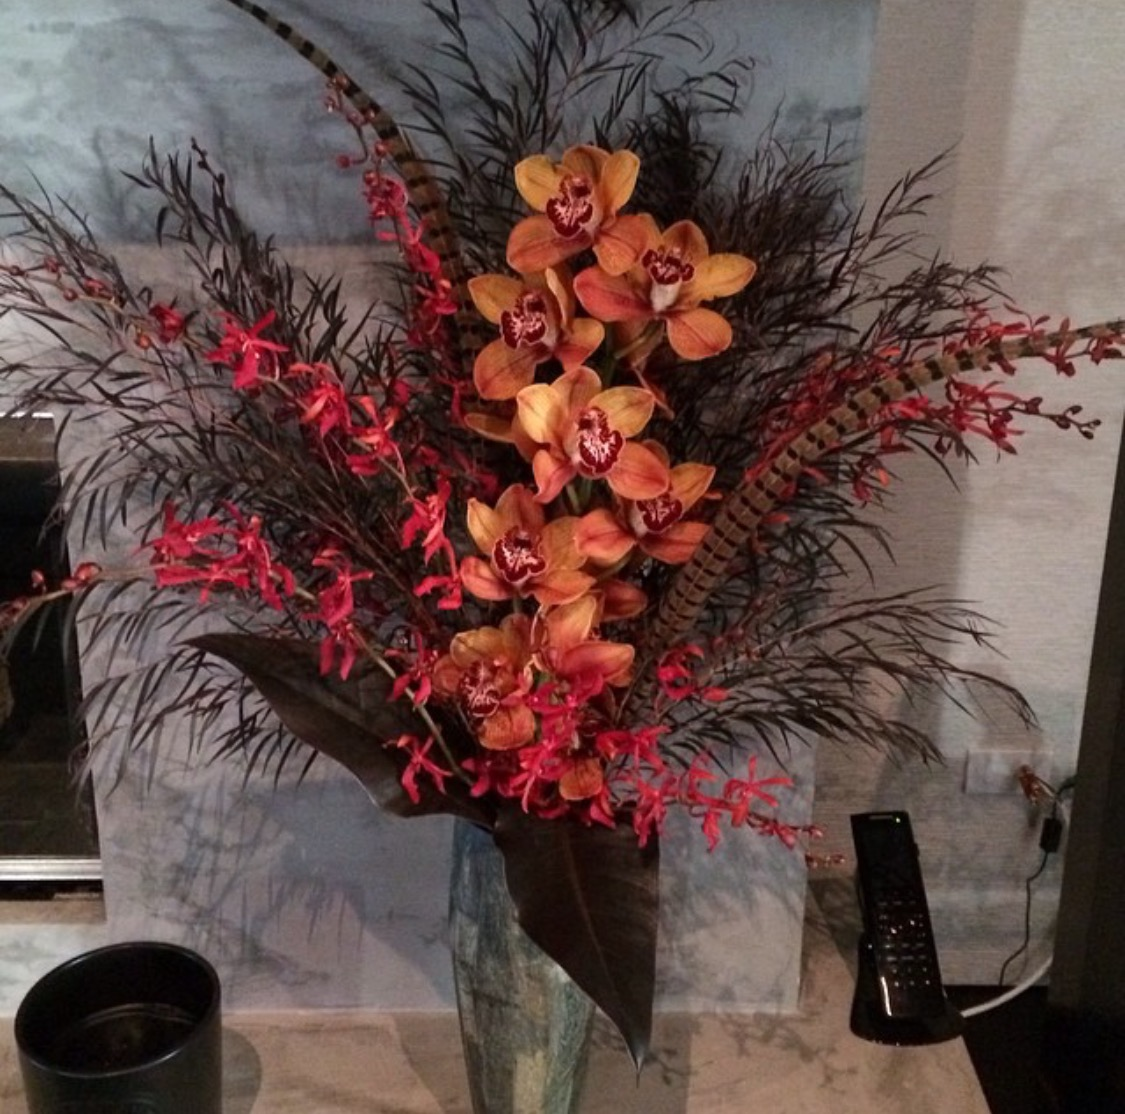 32. Dramatic Dark Tropical Arrangement